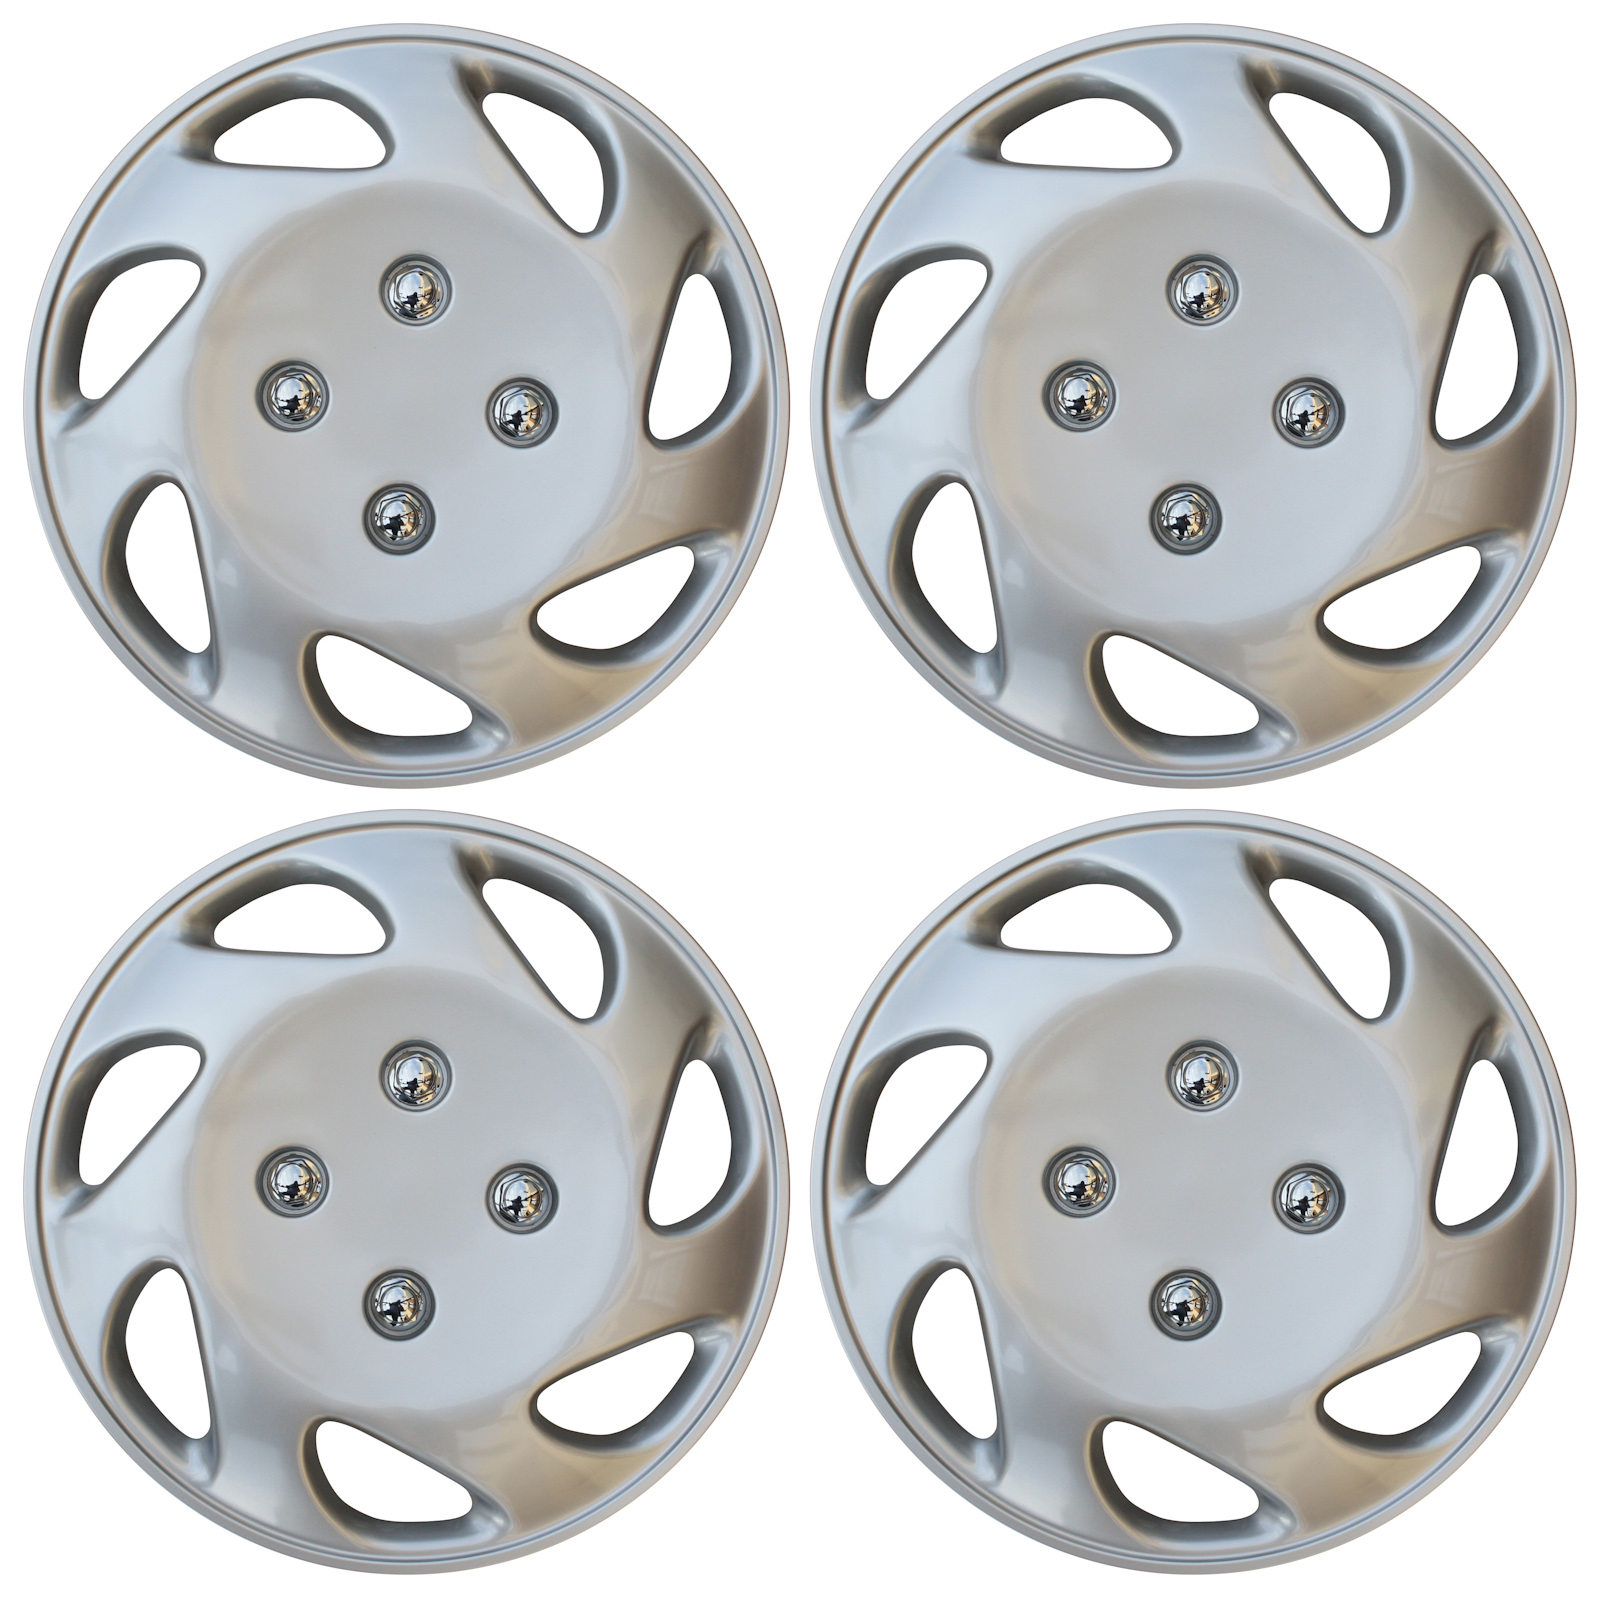 hight resolution of 4 pc universal hub cap abs silver 14 inch rim wheel cover caps fits honda civic